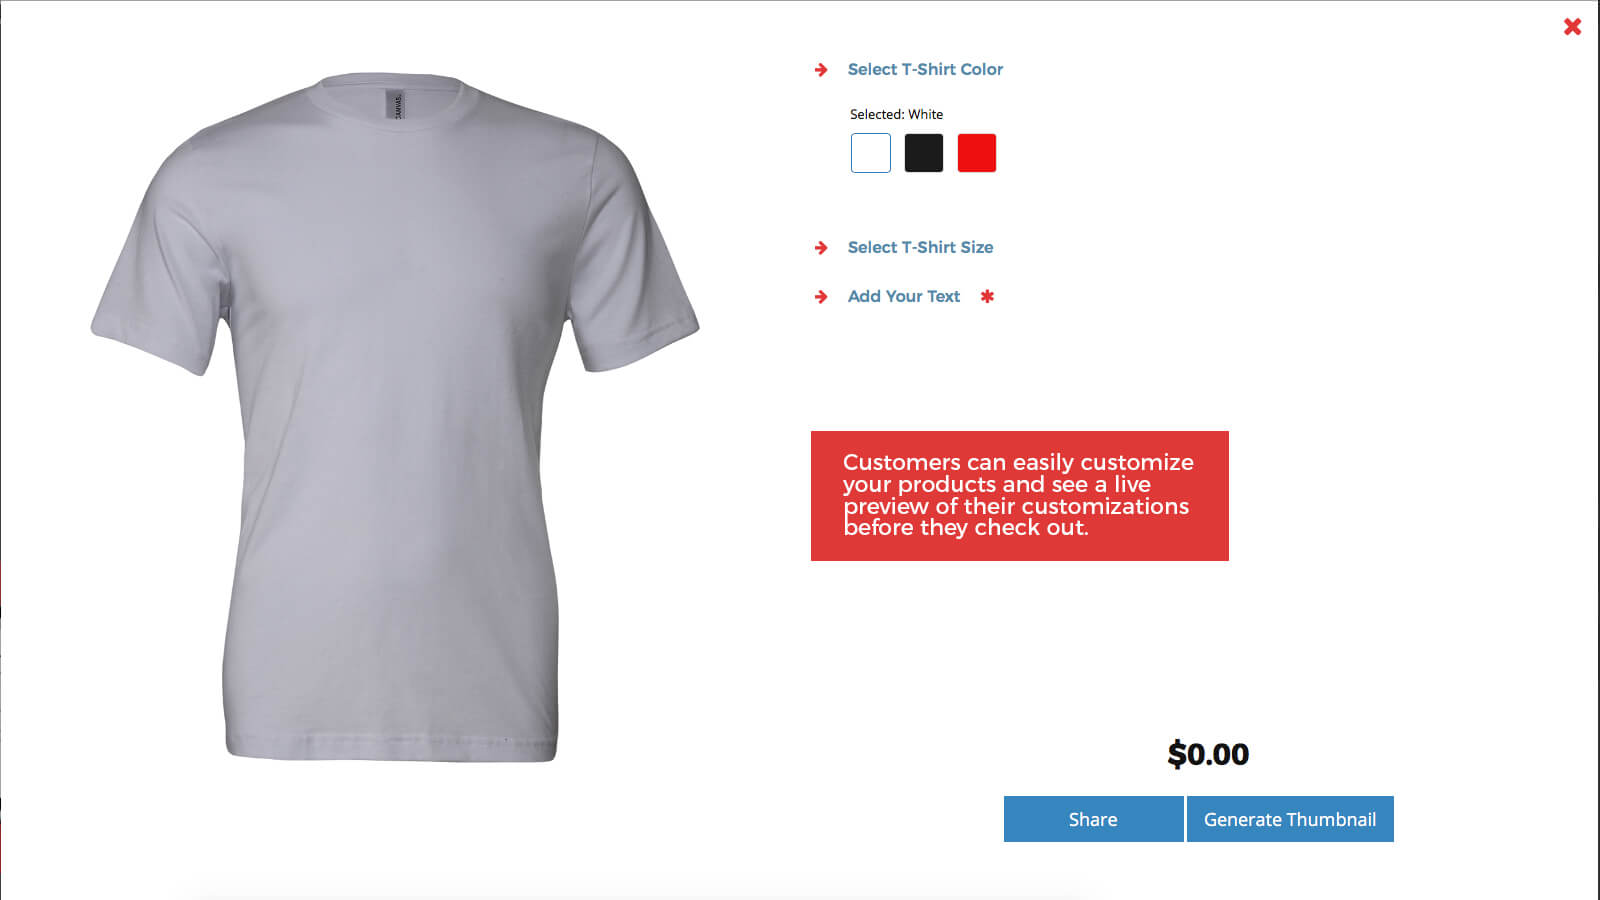 Customers see a live preview as they personalize their products.